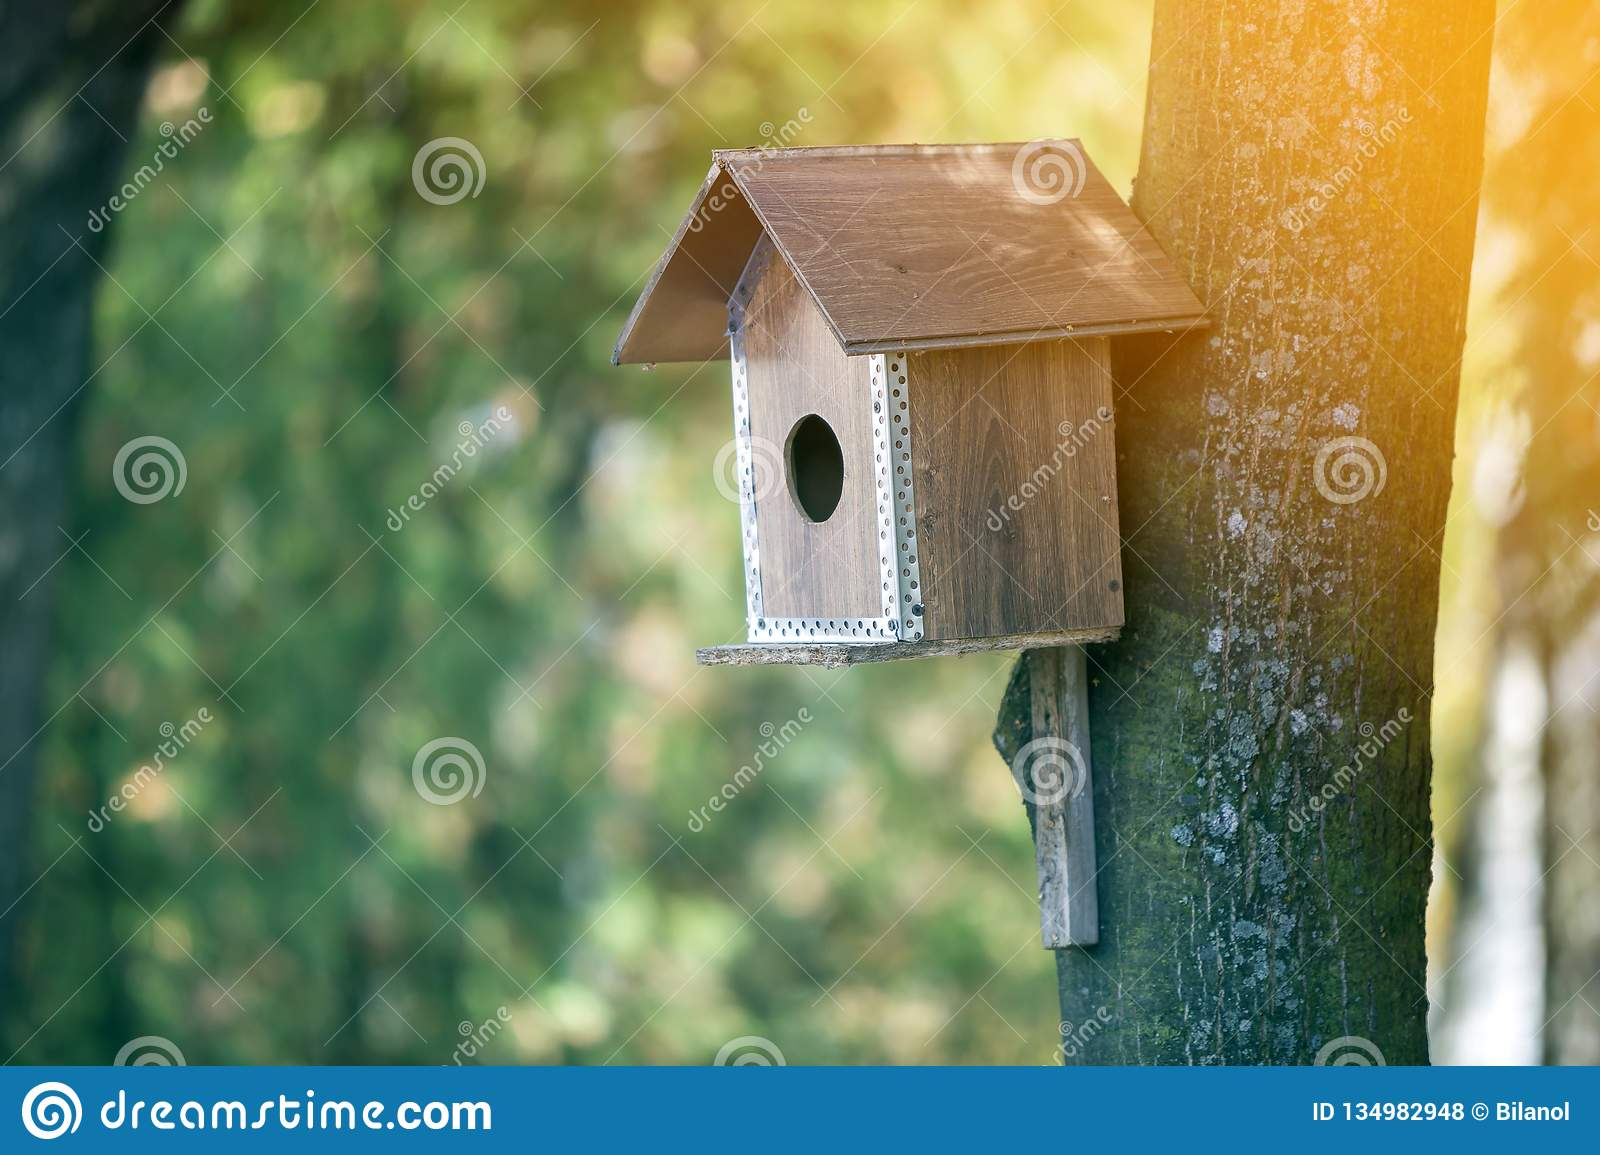 Wooden brown new bird house or nesting box attached to tree trunk in summer park or forest on blurred sunny green foliage bokeh